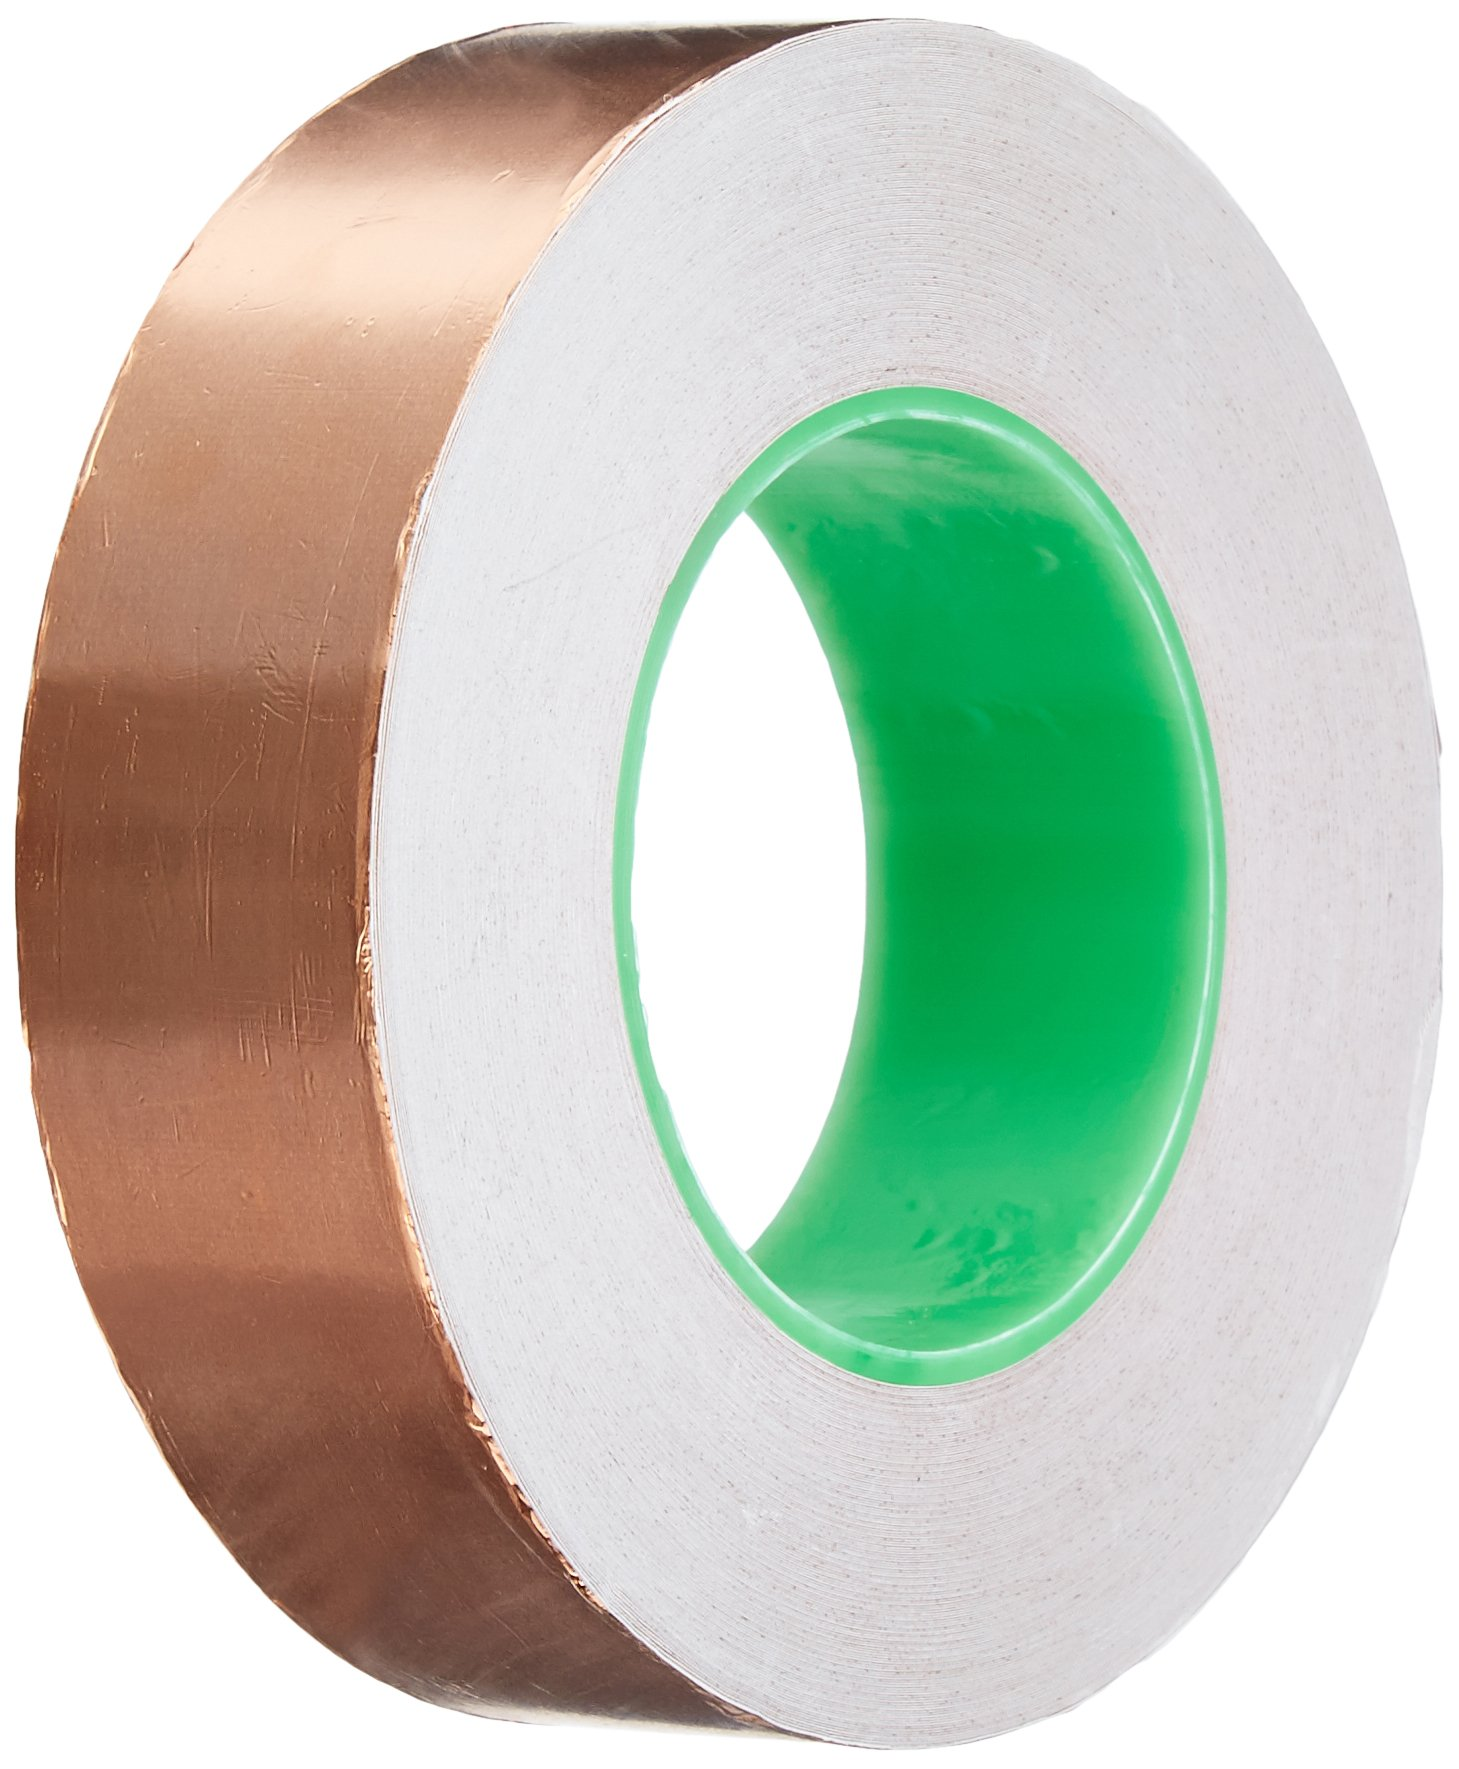 Cinta de Cobre 38mm x 50mt Adhesivo Conductor TAPES MASTER